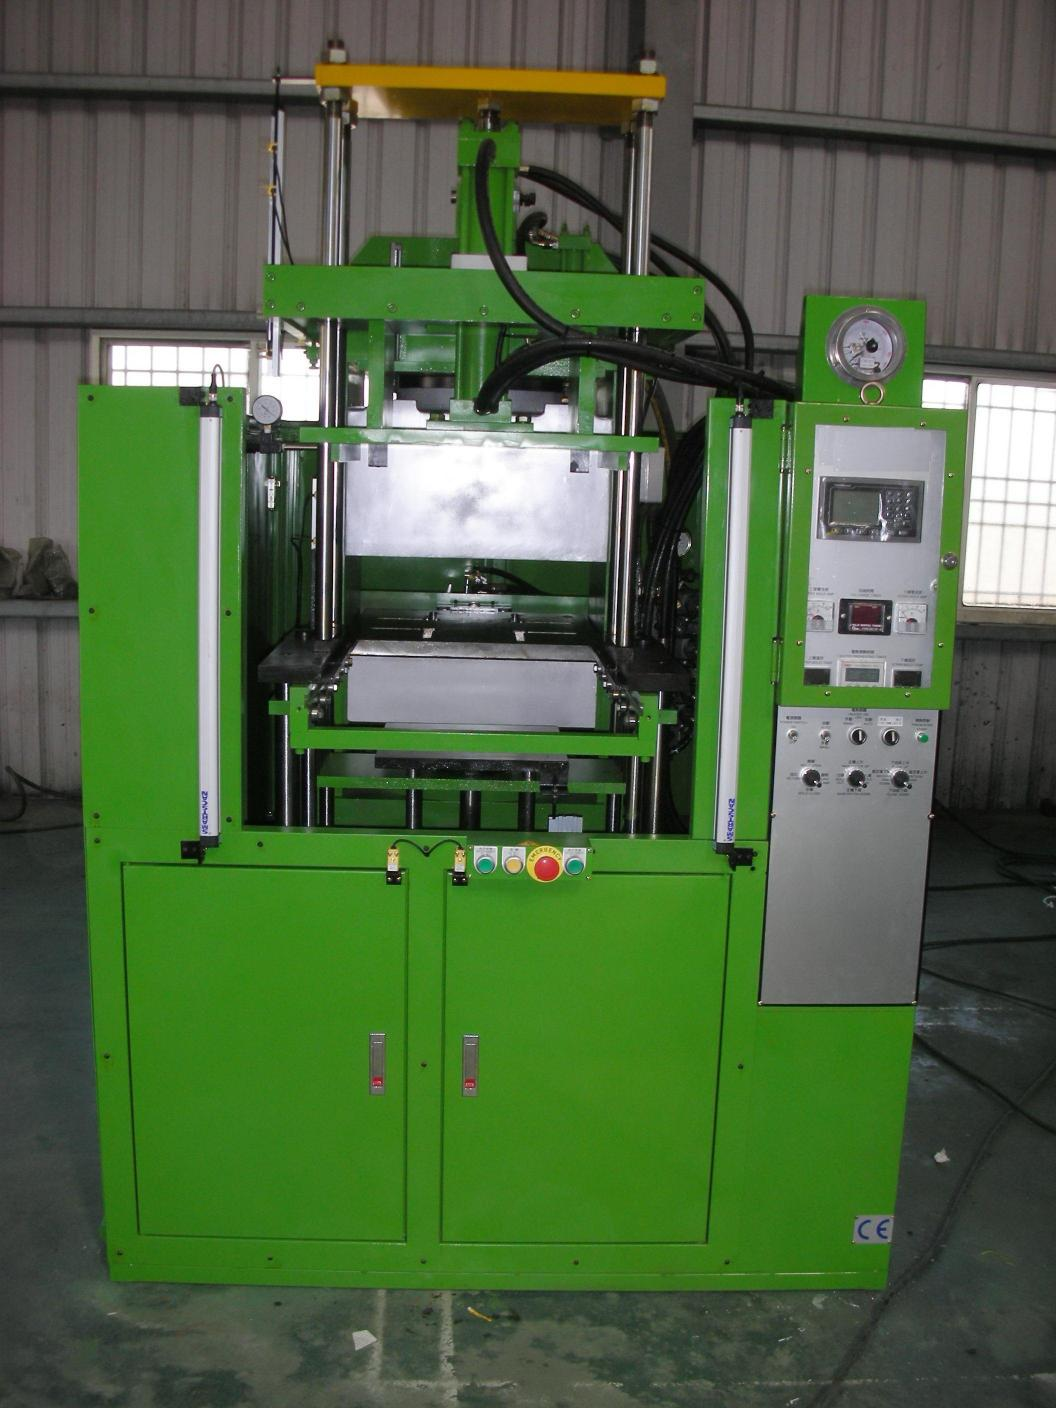 HPV-*-3RT-CEVacuum Type Oil Seal Compression Molding Machine-HPV-*-3RT-CE